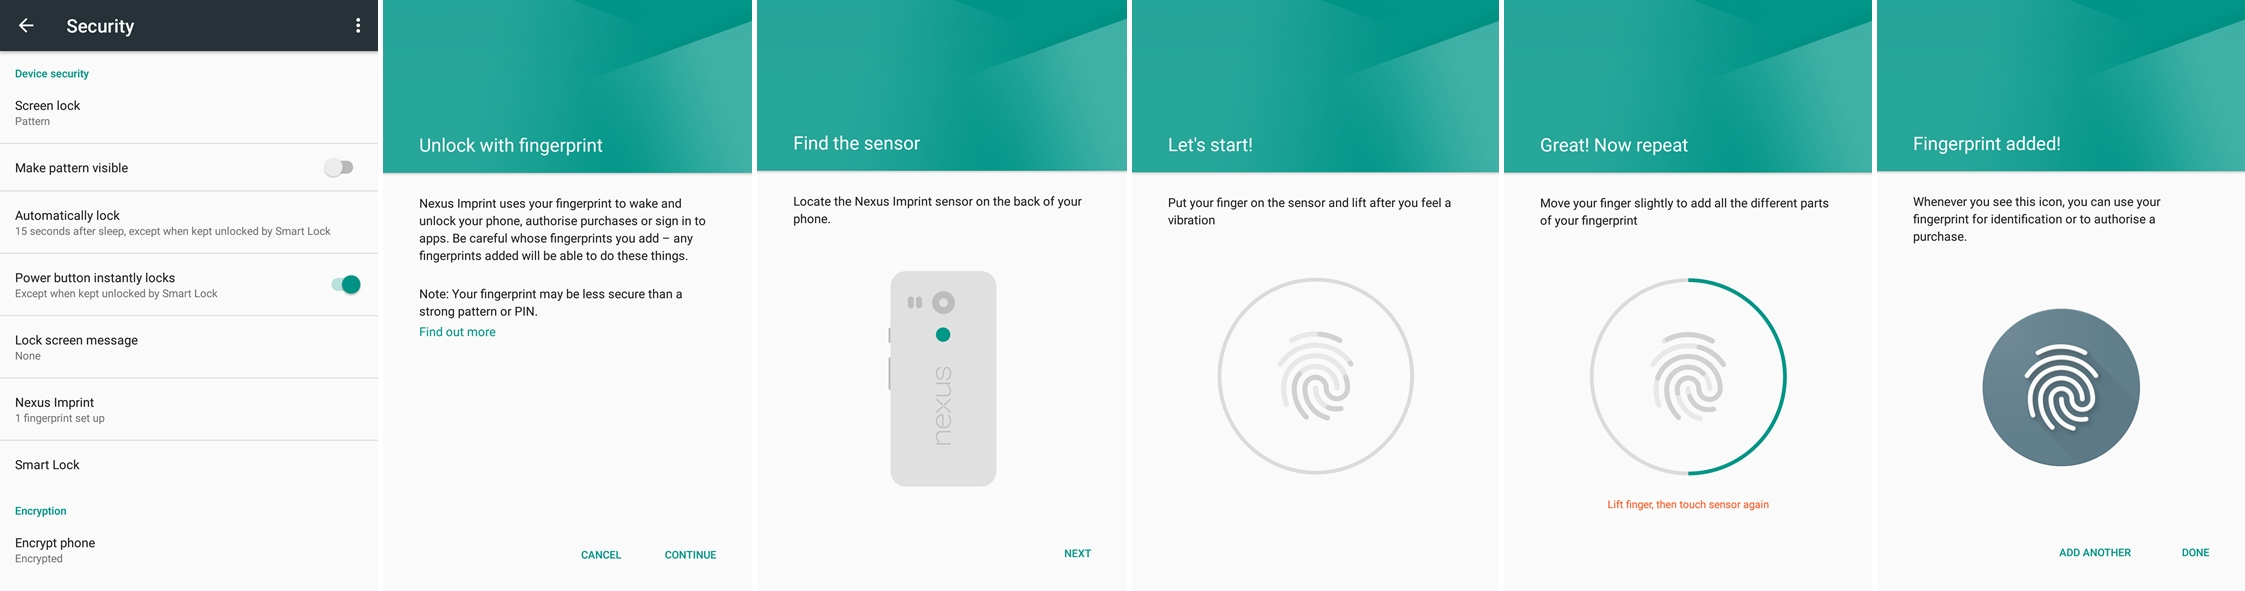 How to set up fingerprint unlock screenshot (Nexus)